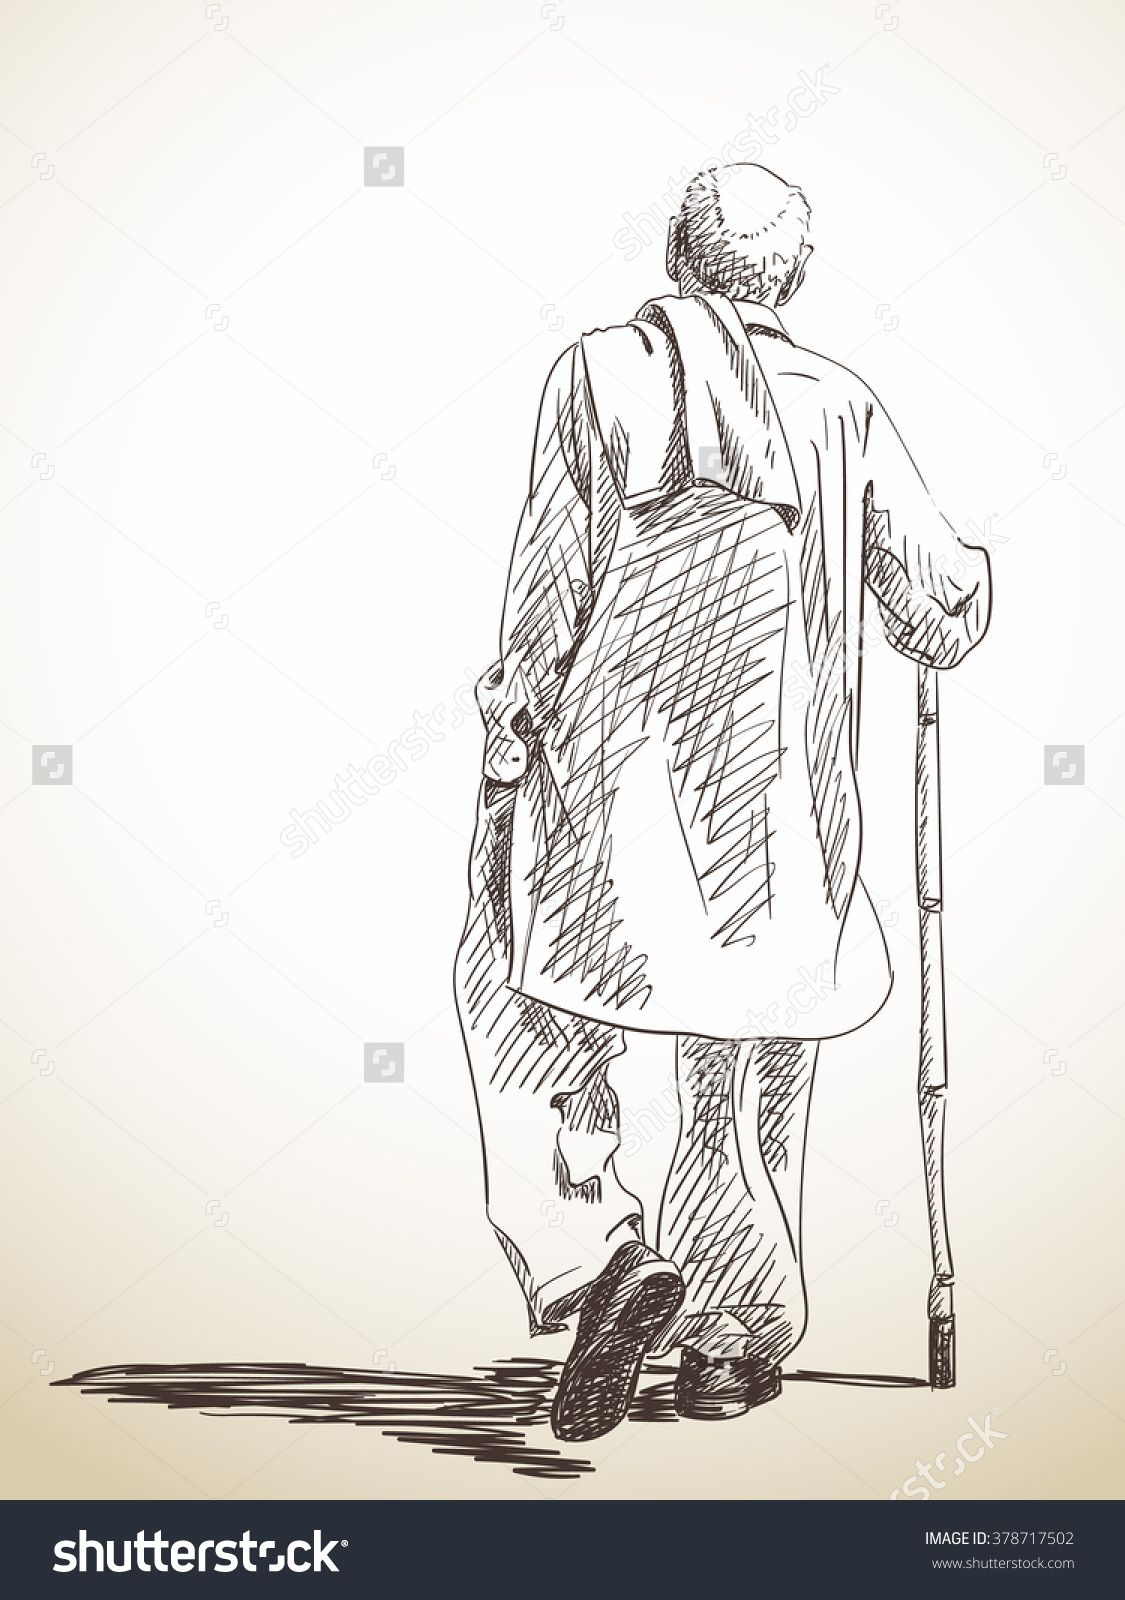 Pencil Drawing Of A Man Walking